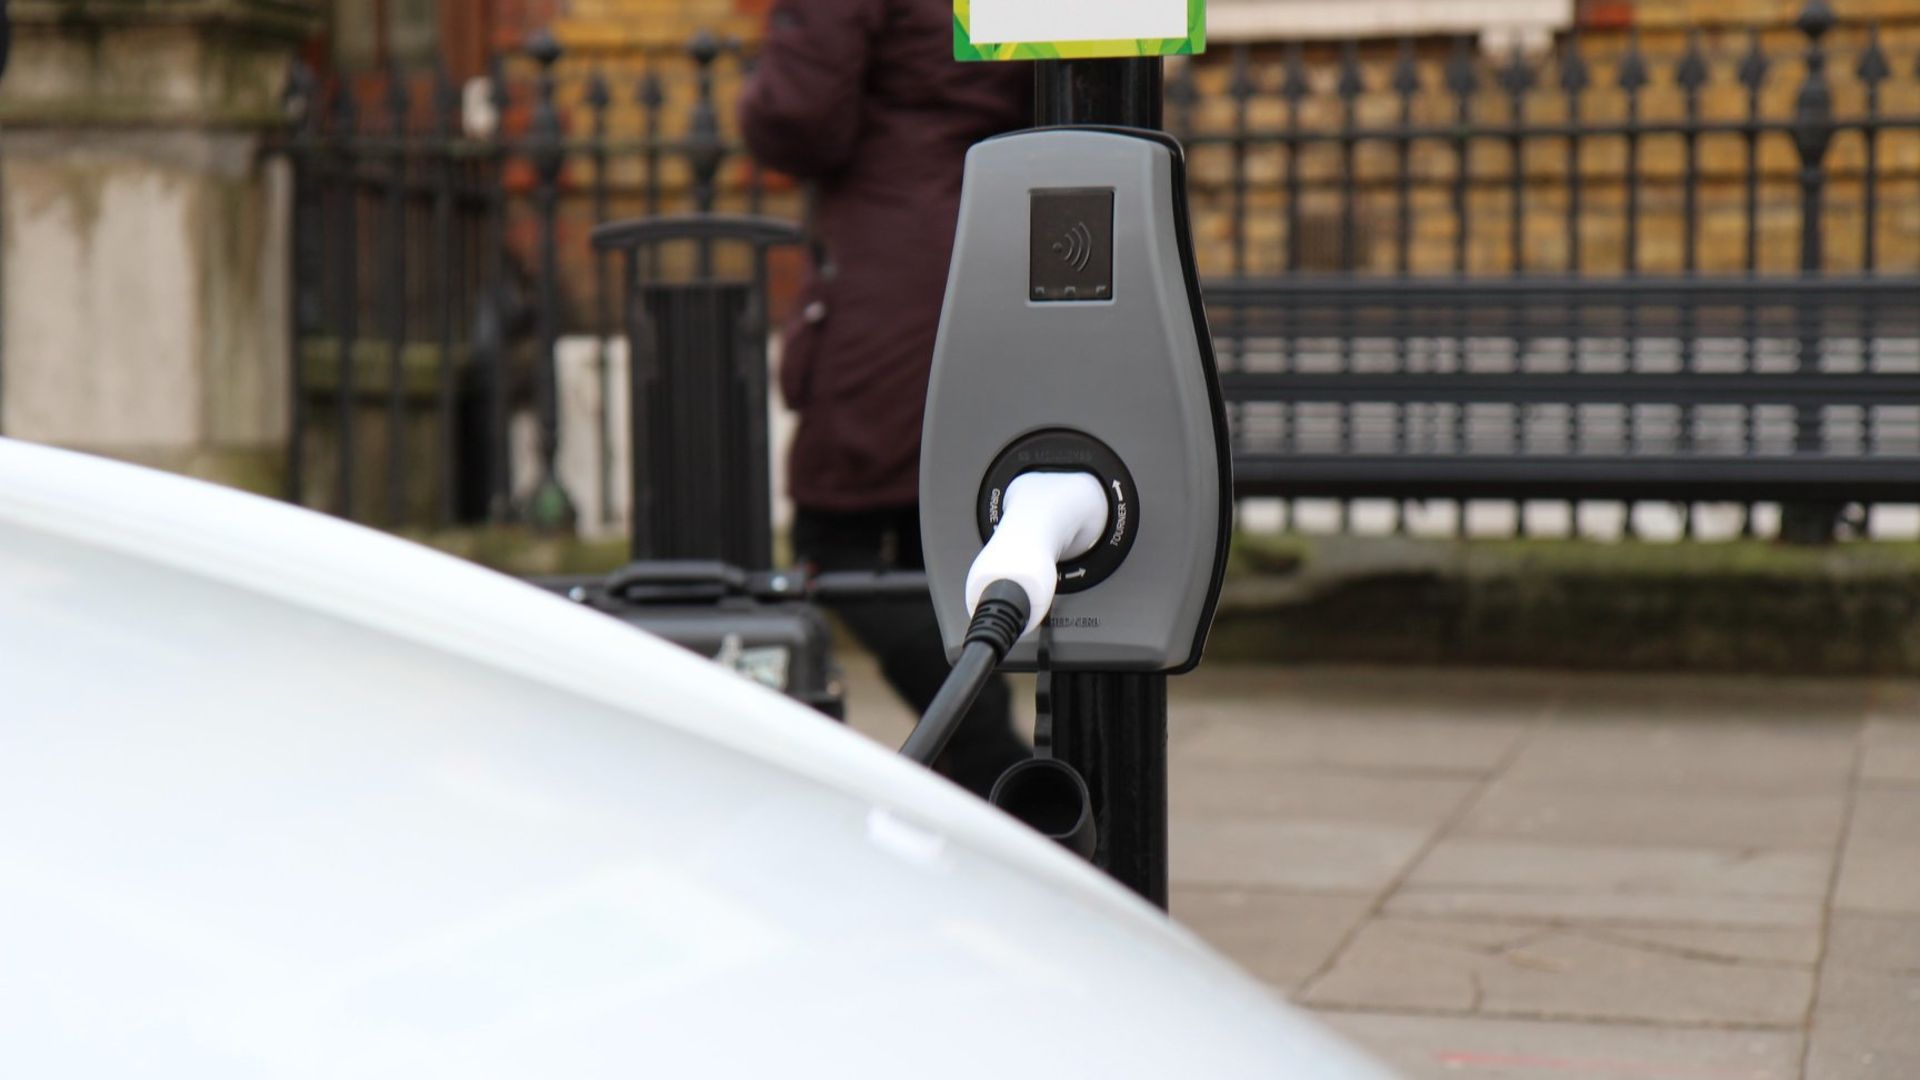 Connected Kerb charging points